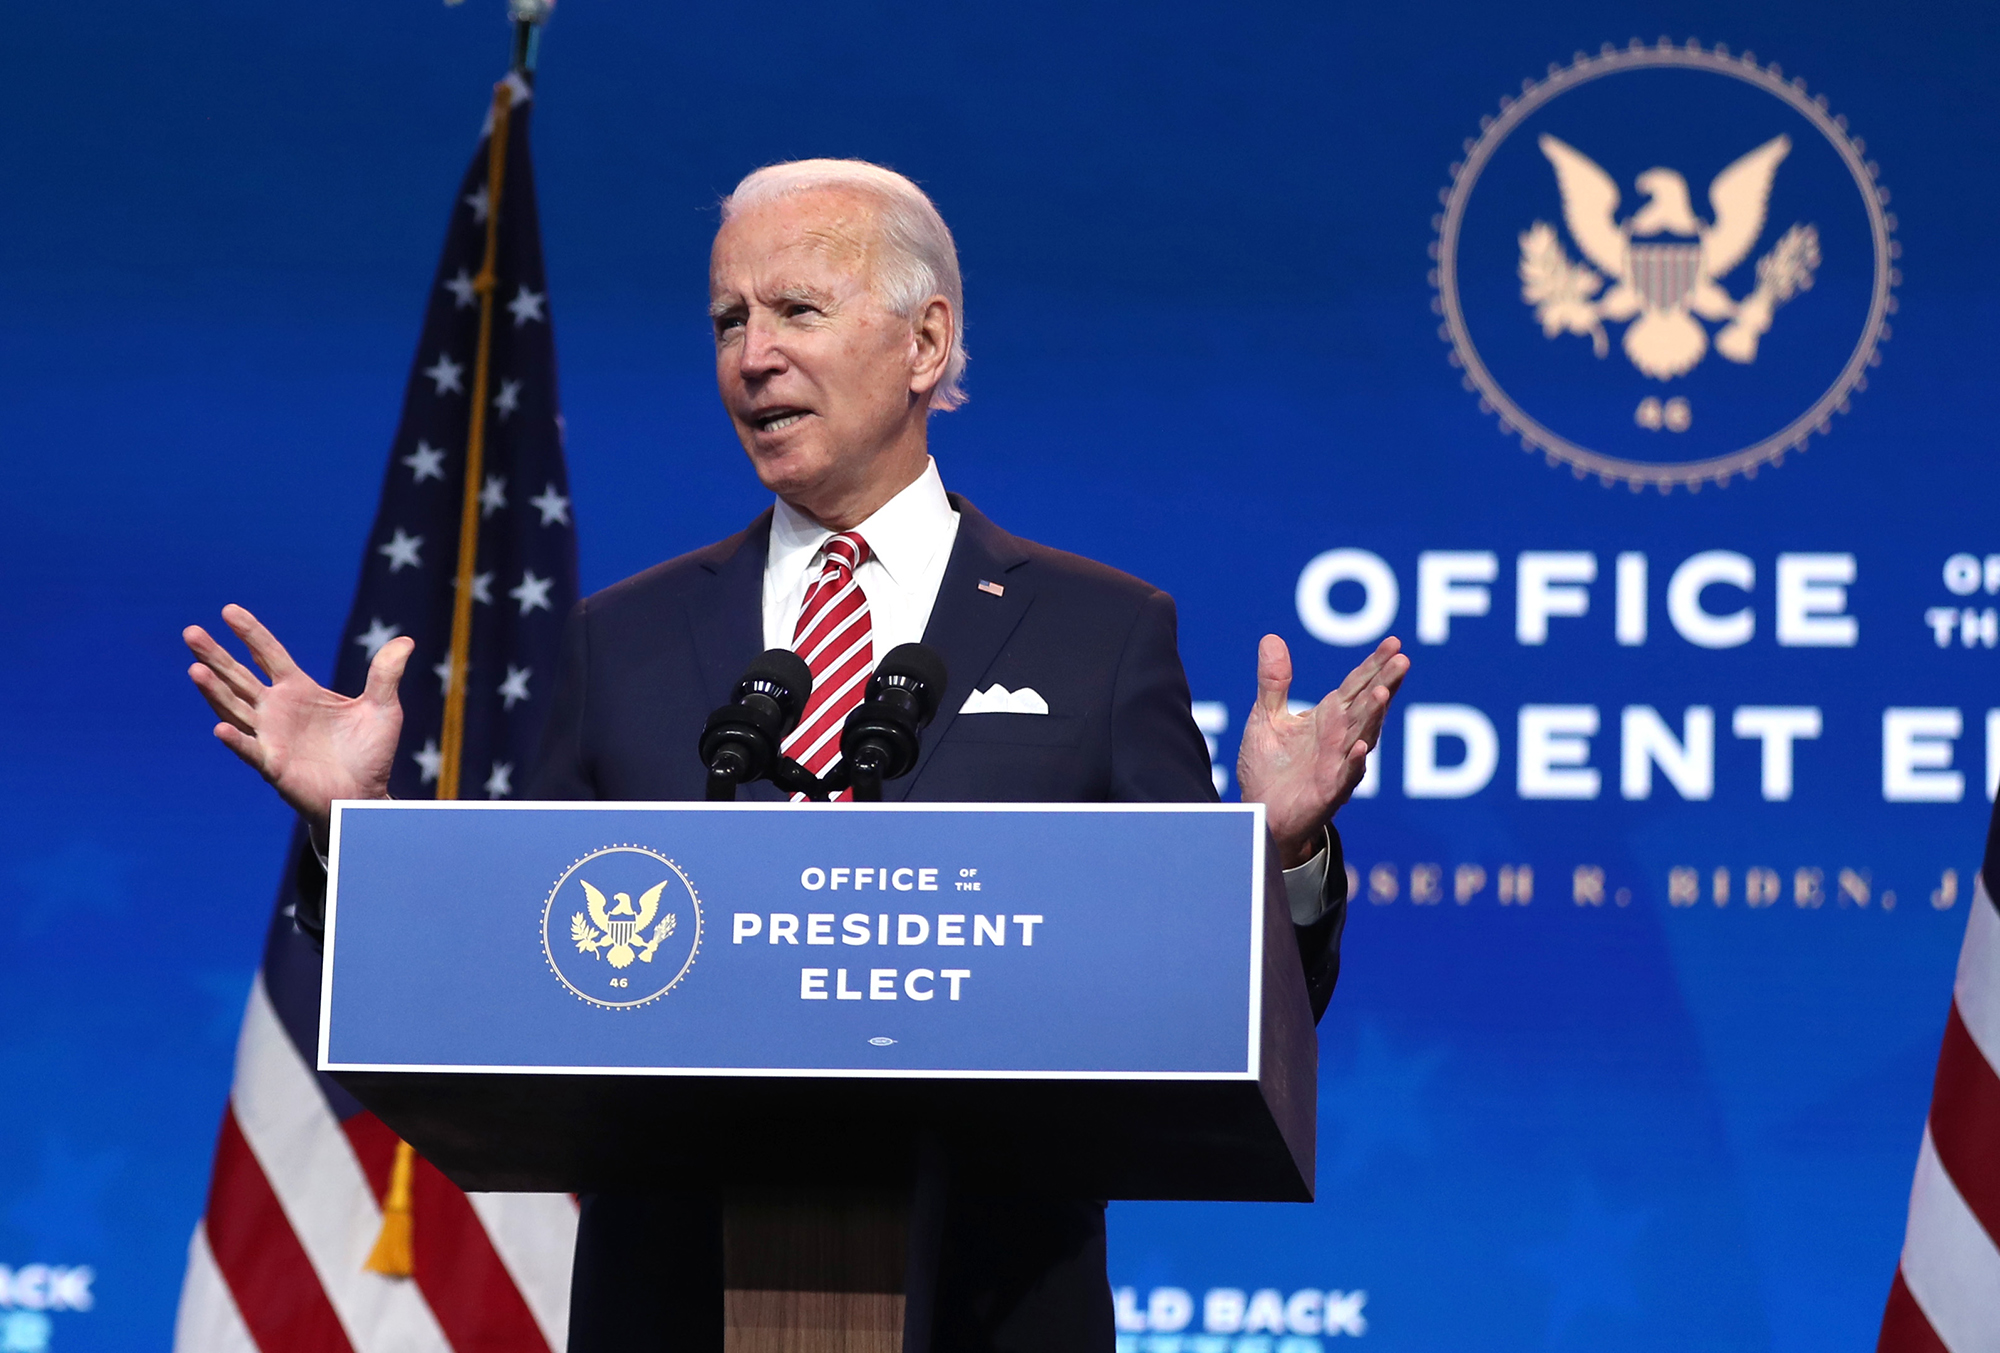 Biden's margin of victory over Trump surpasses 6 million votes